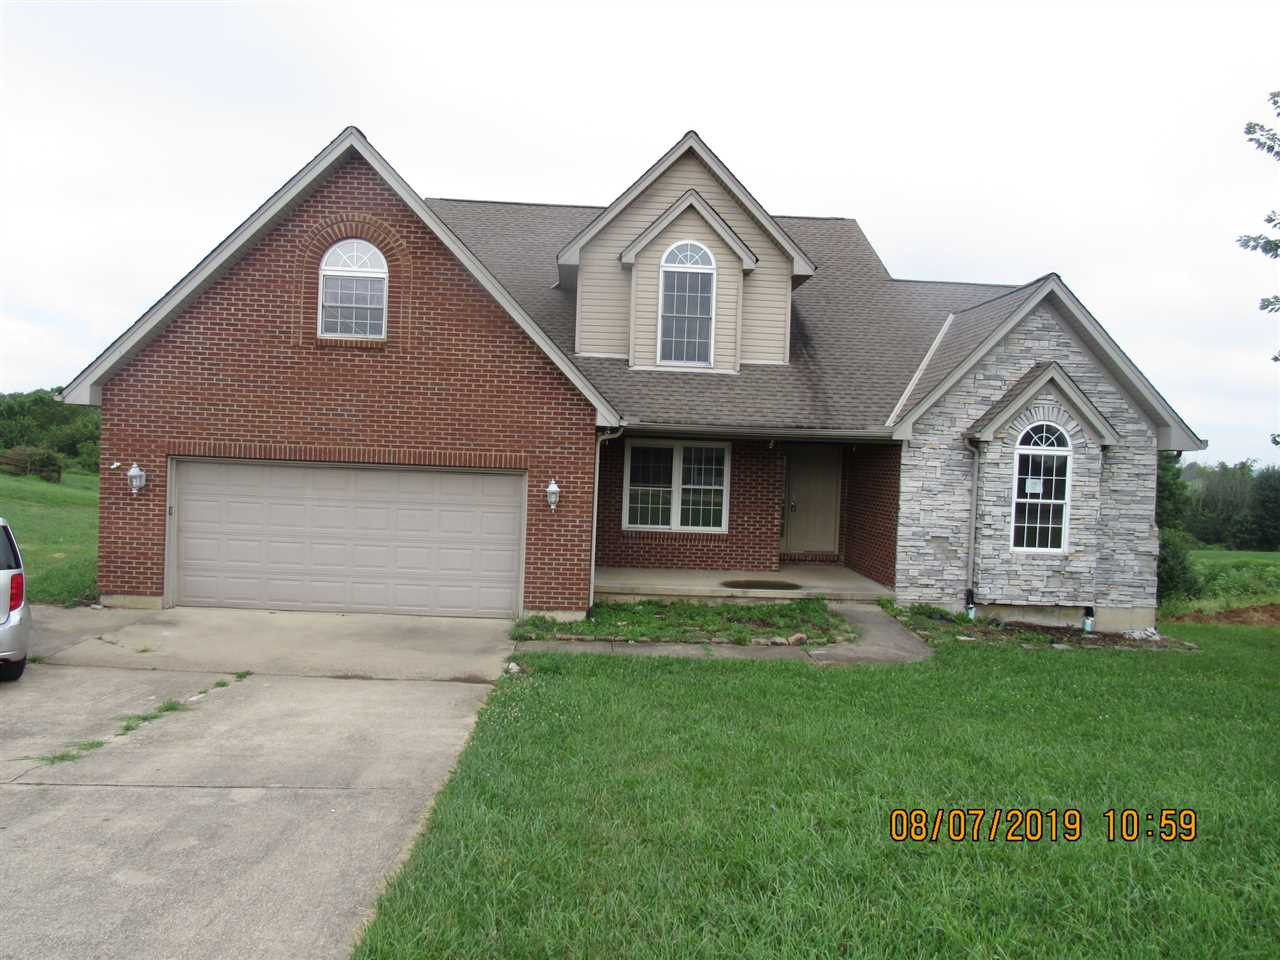 Photo 1 for 112 Bridle Ct Dry Ridge, KY 41035